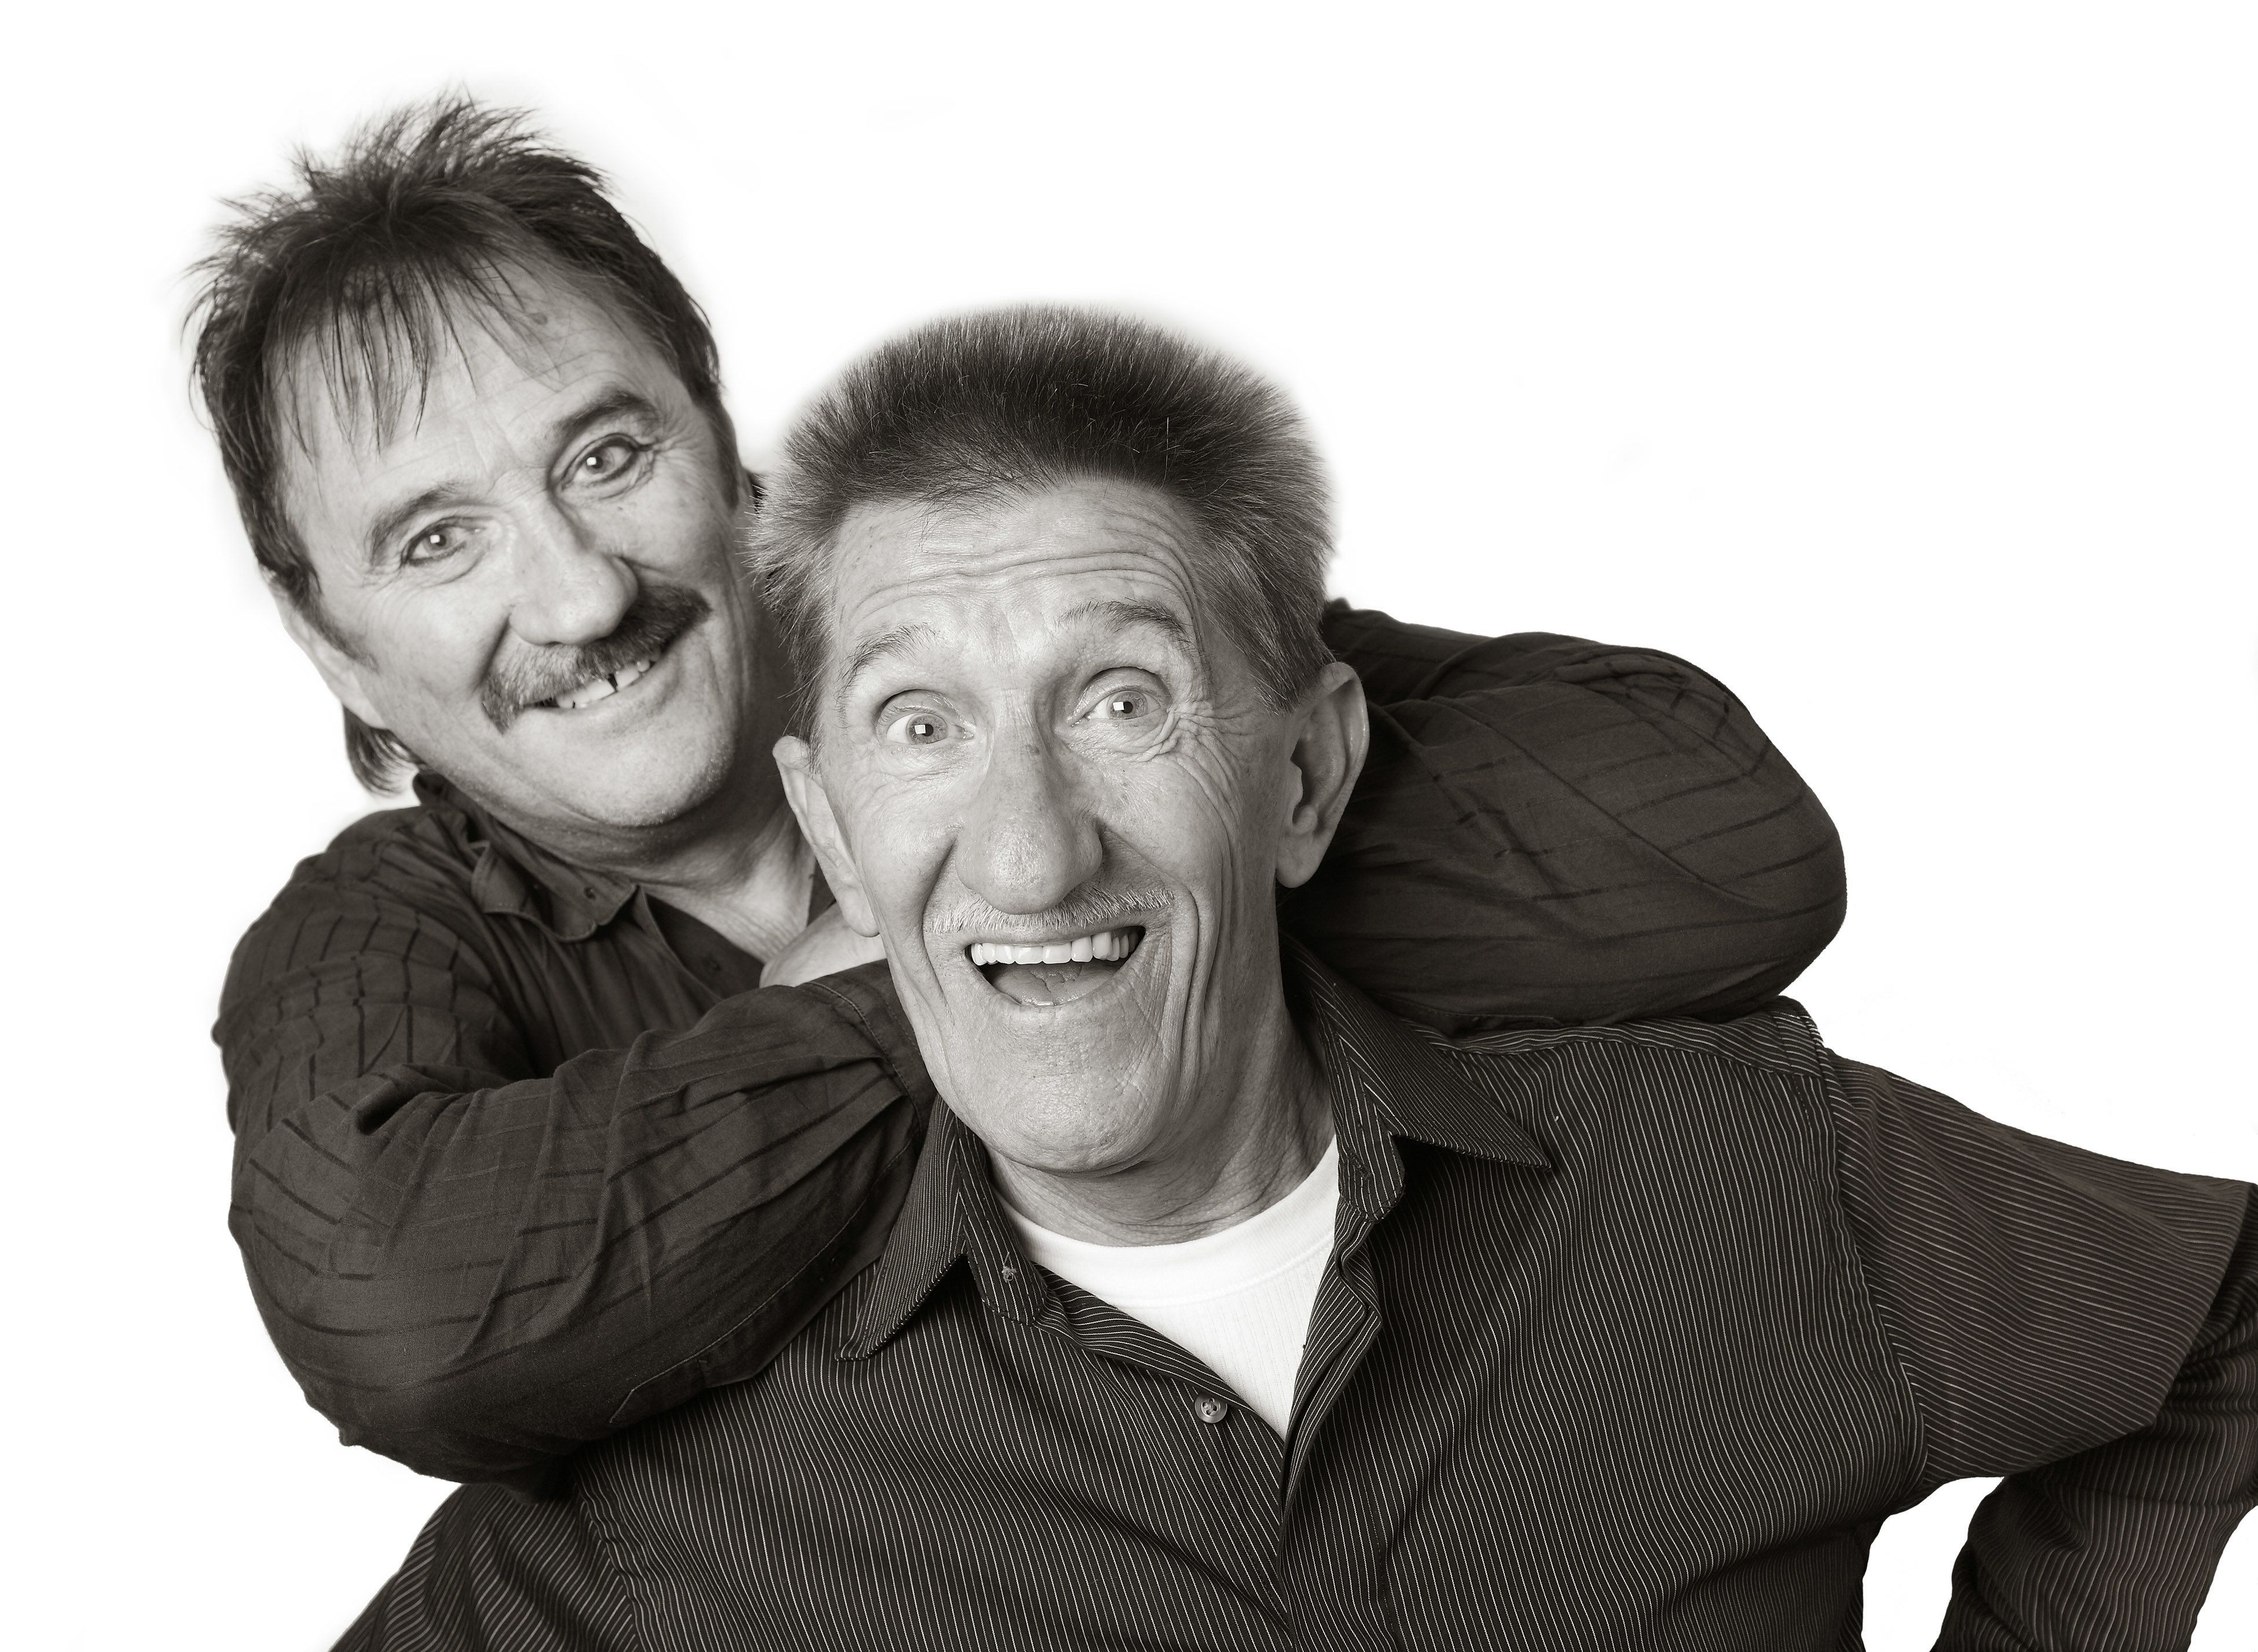 'Devastated' Paul Chuckle Pays Heartbreaking Full Tribute To Late Brother